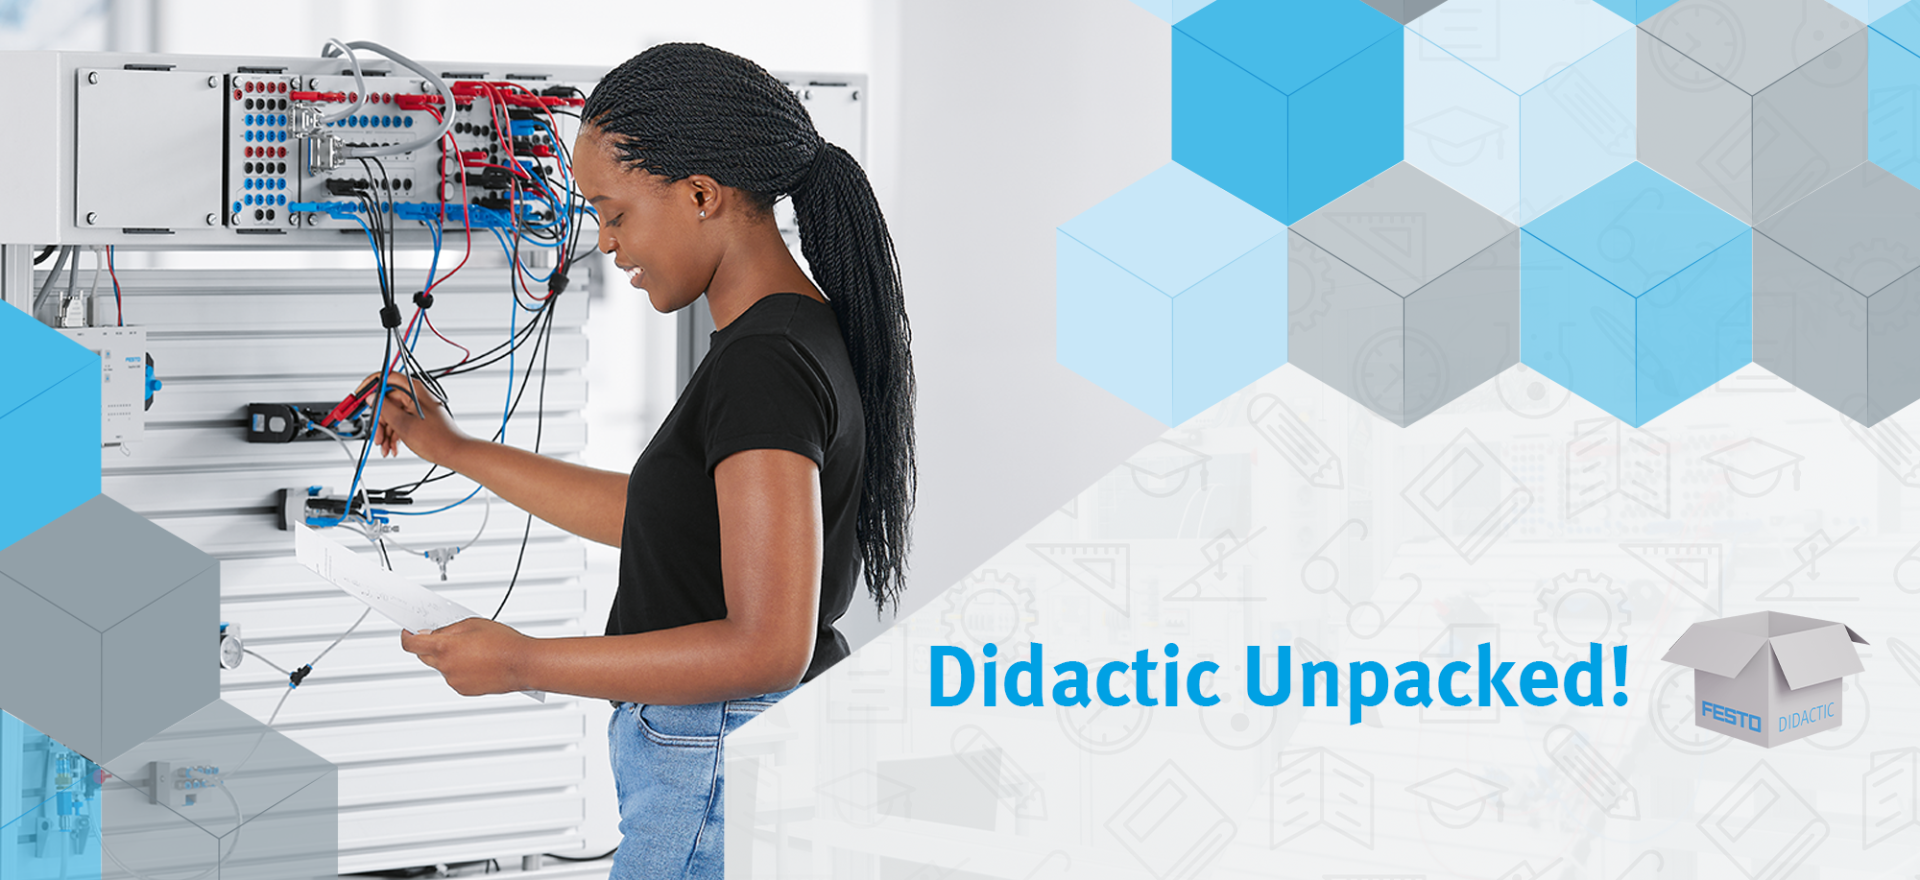 Didactic Unpacked